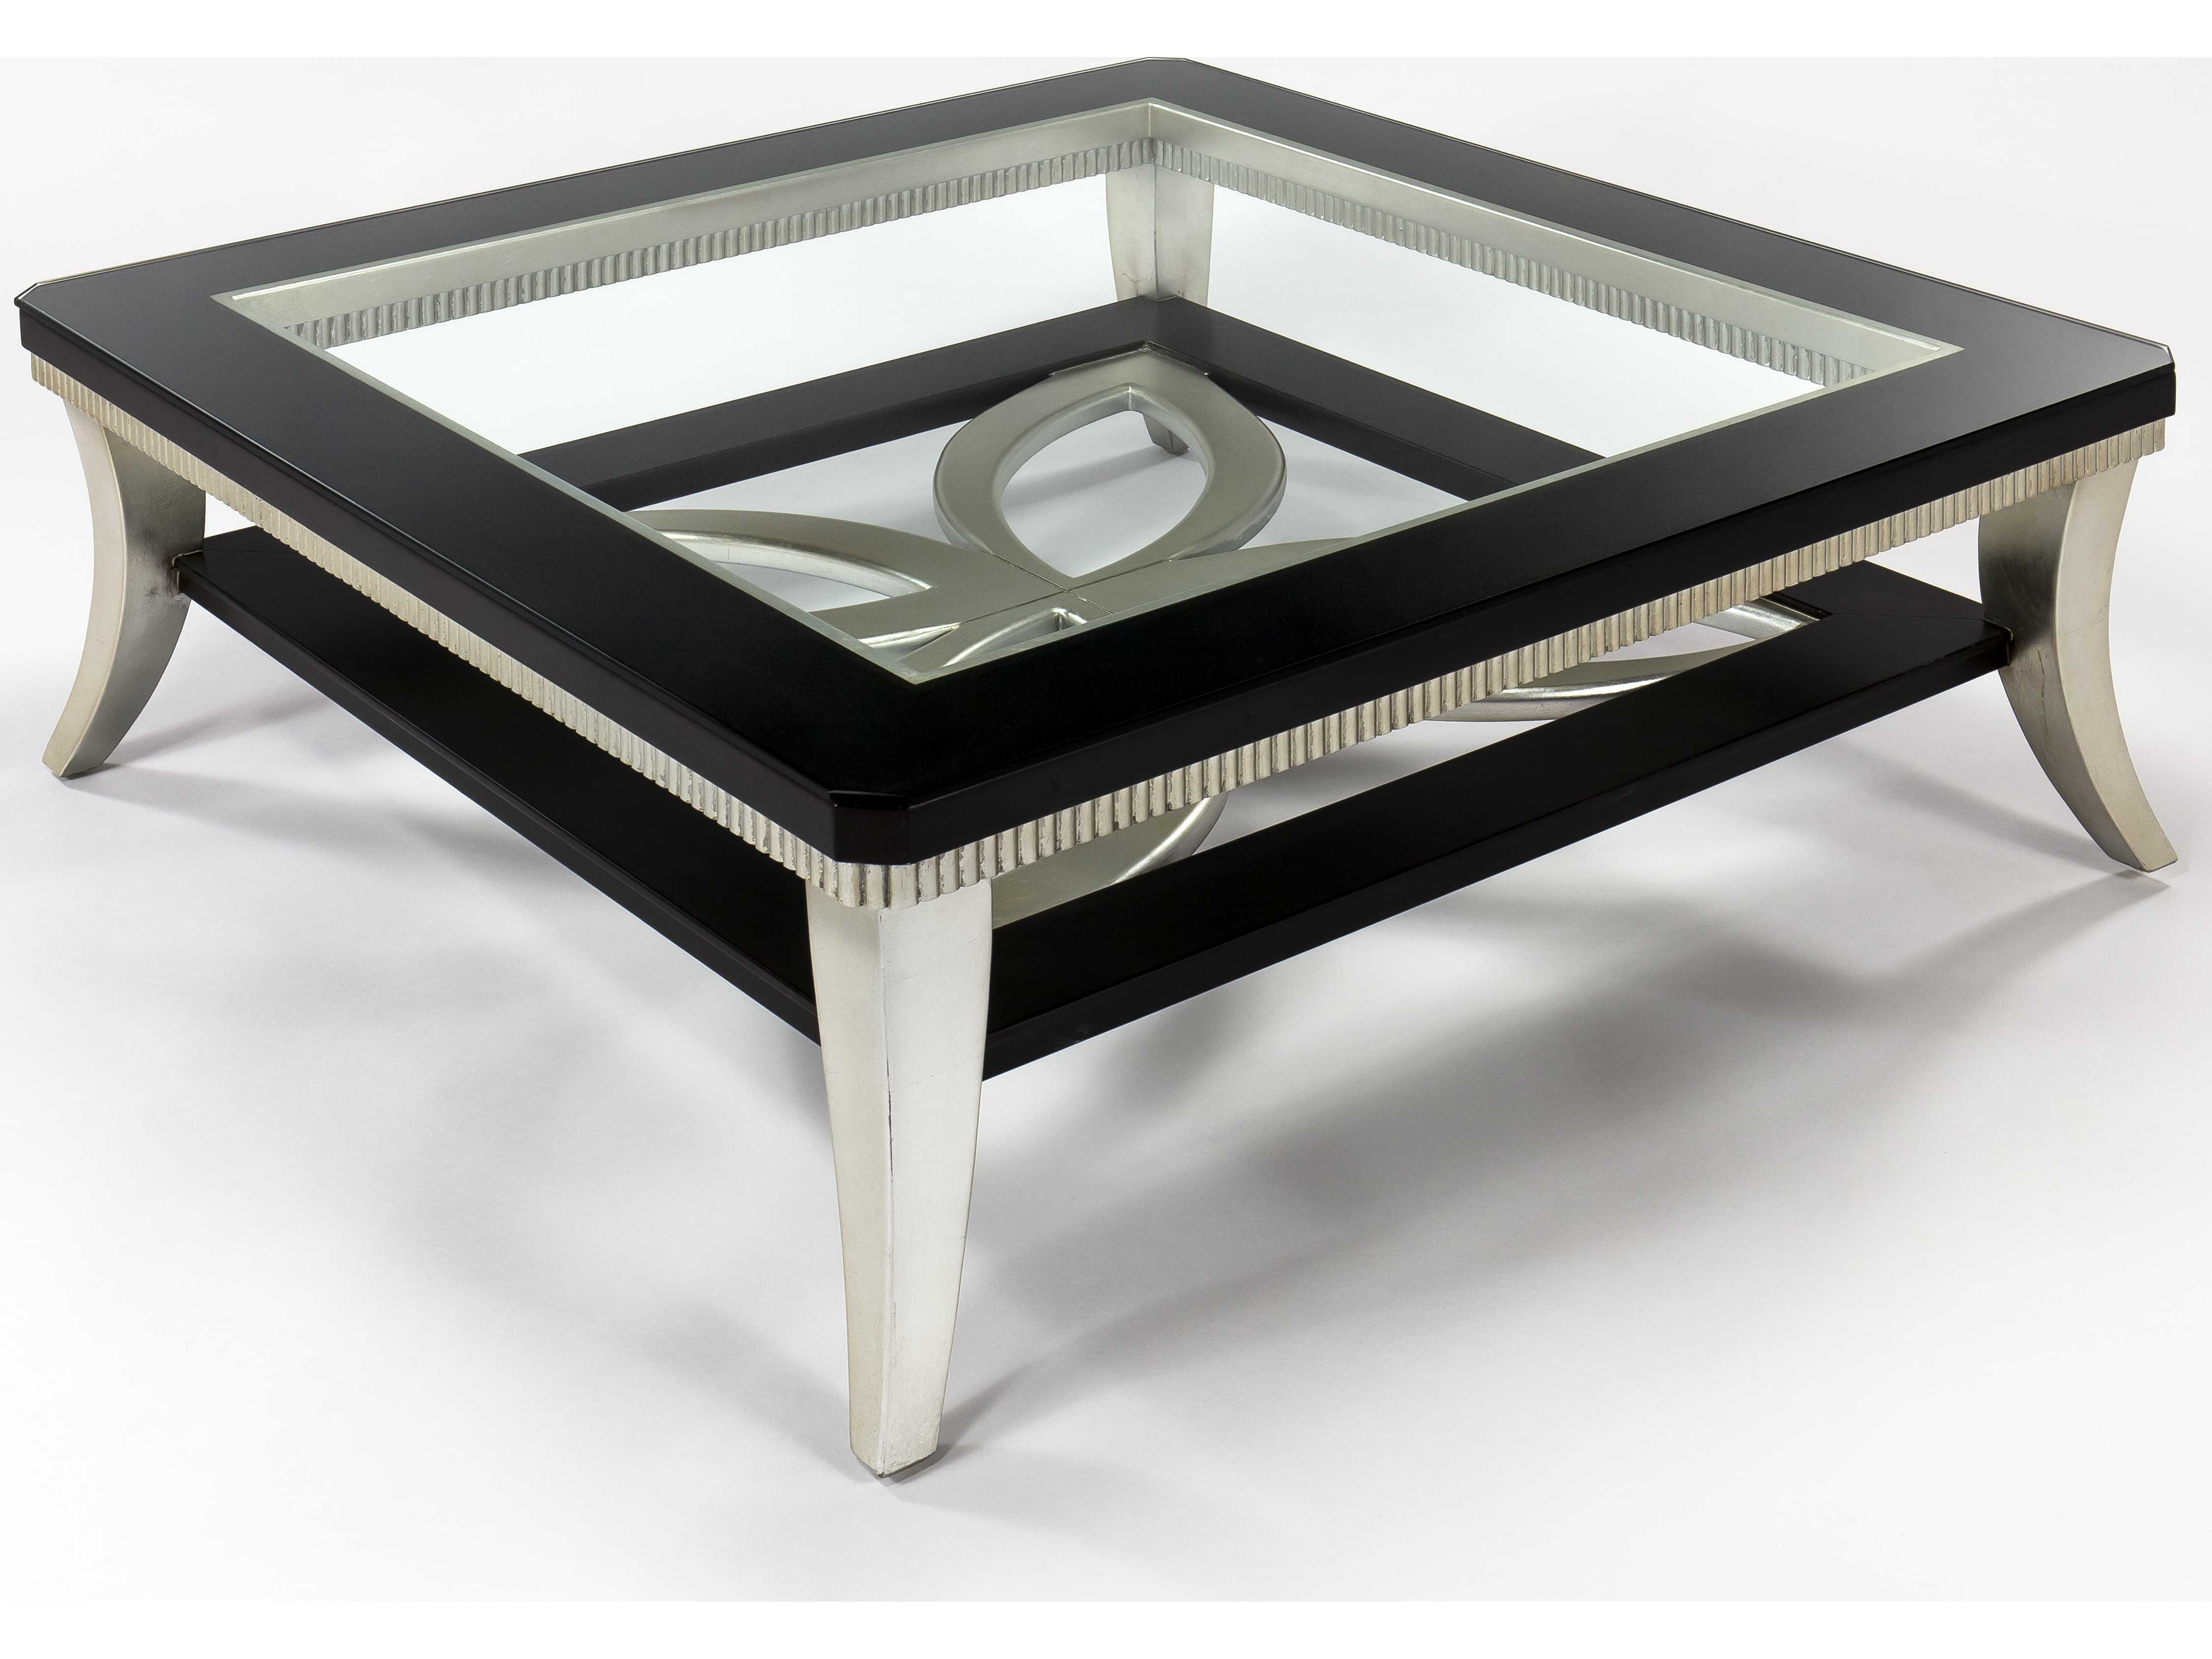 You Ll Love The Coffee Table At Wayfair Great Deals On All Furniture Products With Free Shipping Most Stuff Even